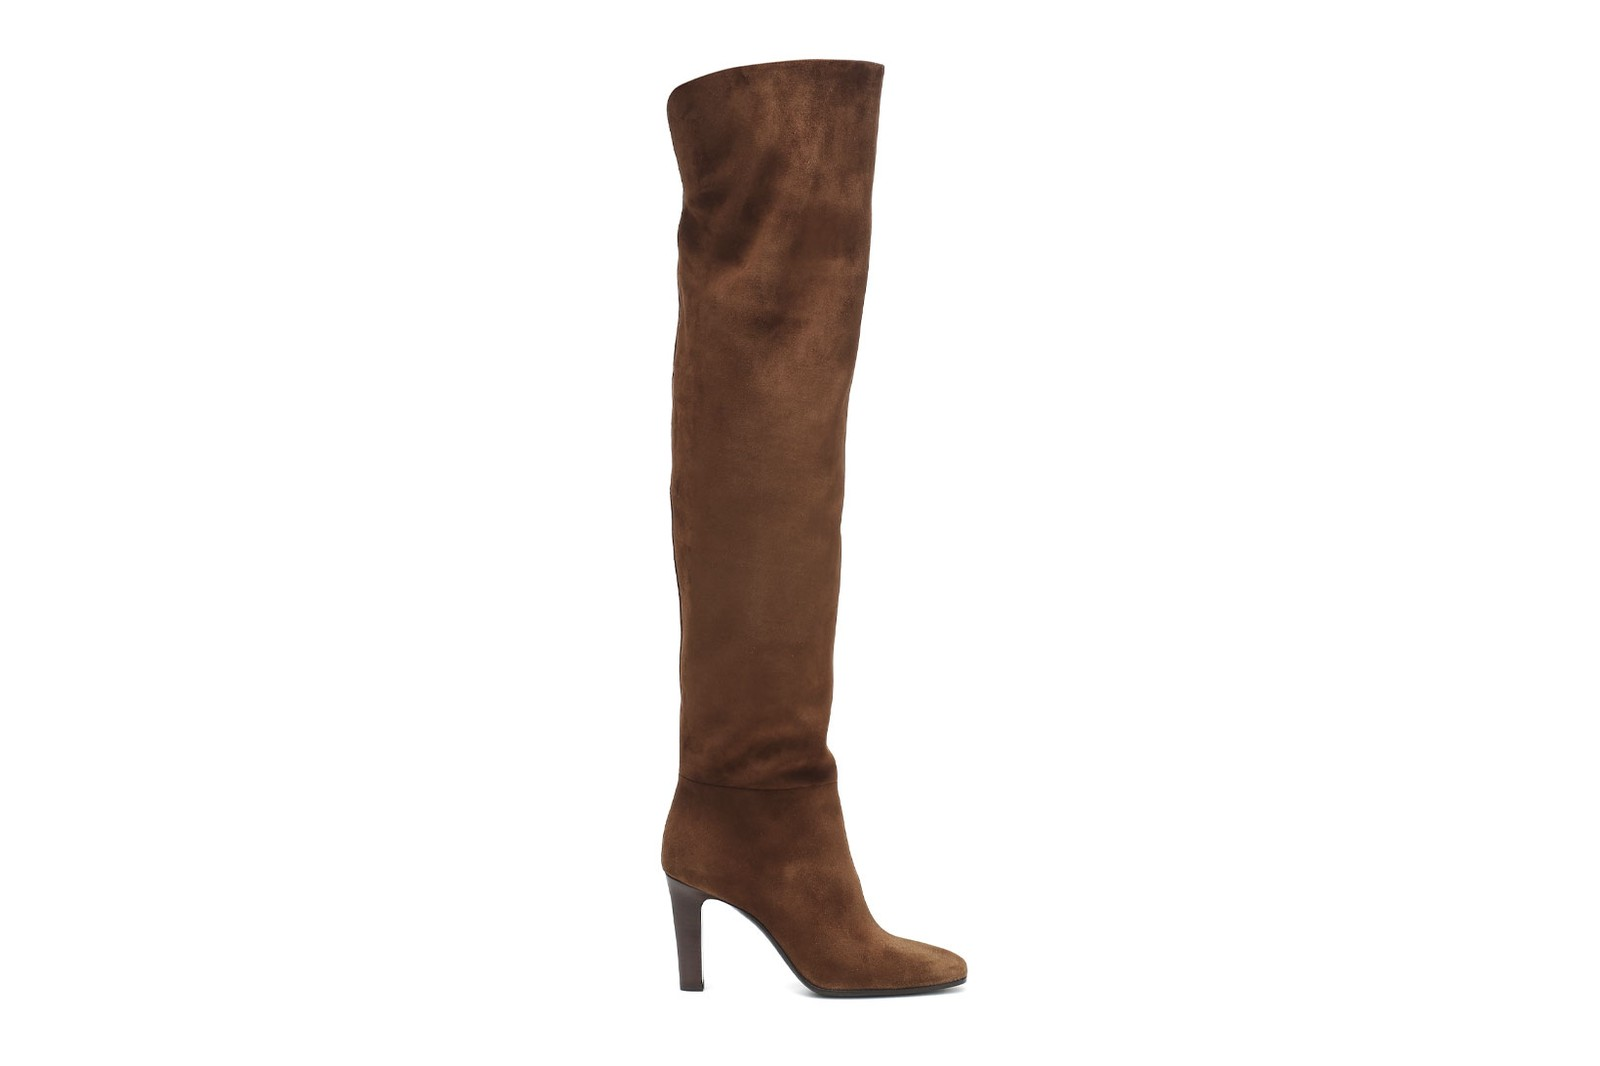 thigh high boots over the knee fall winter trends bottega veneta saint laurent maison margiela tabi